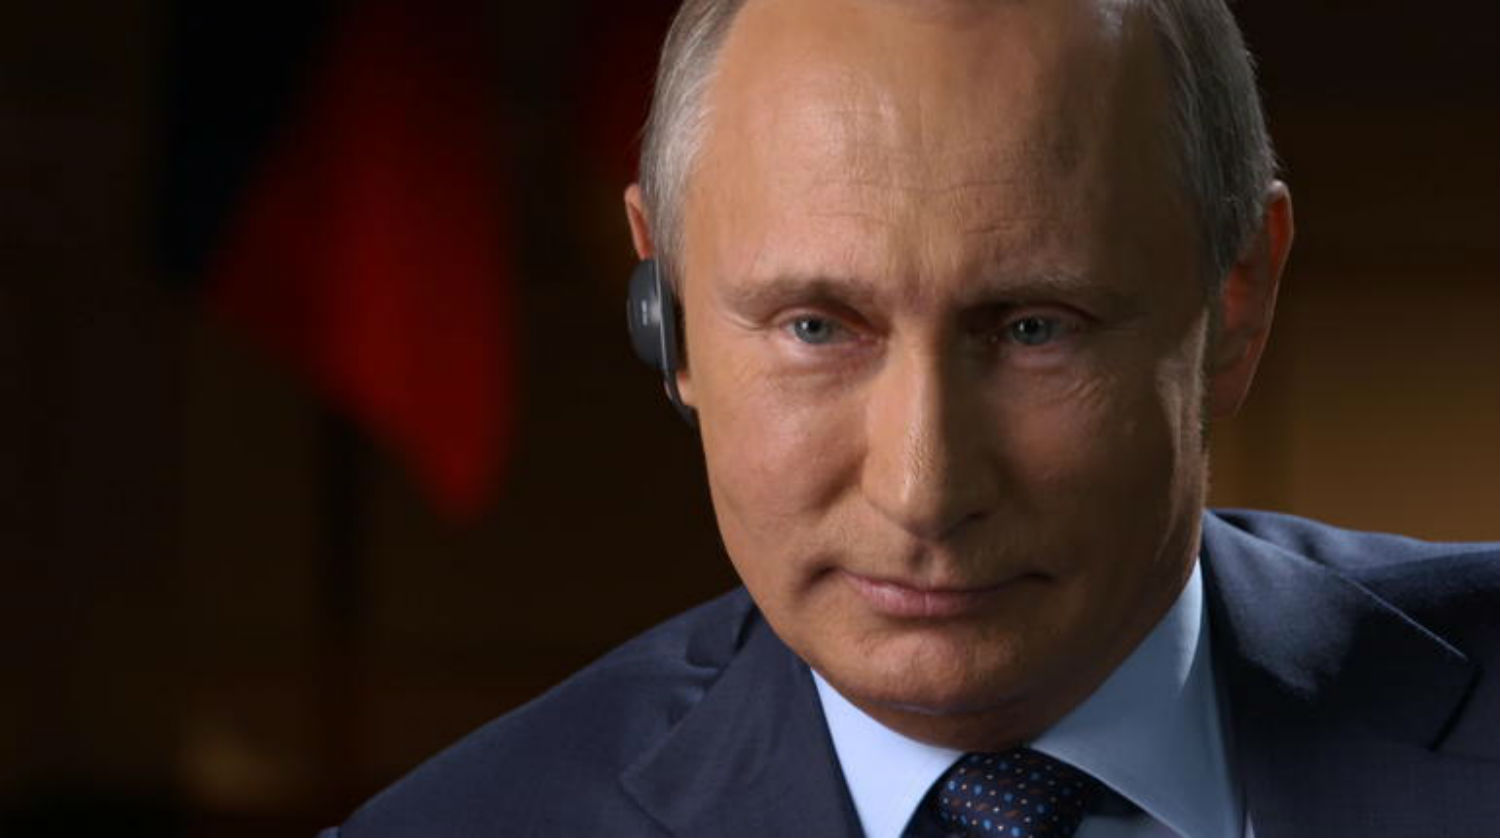 Putin condemns homophobia, supports LGBT rights